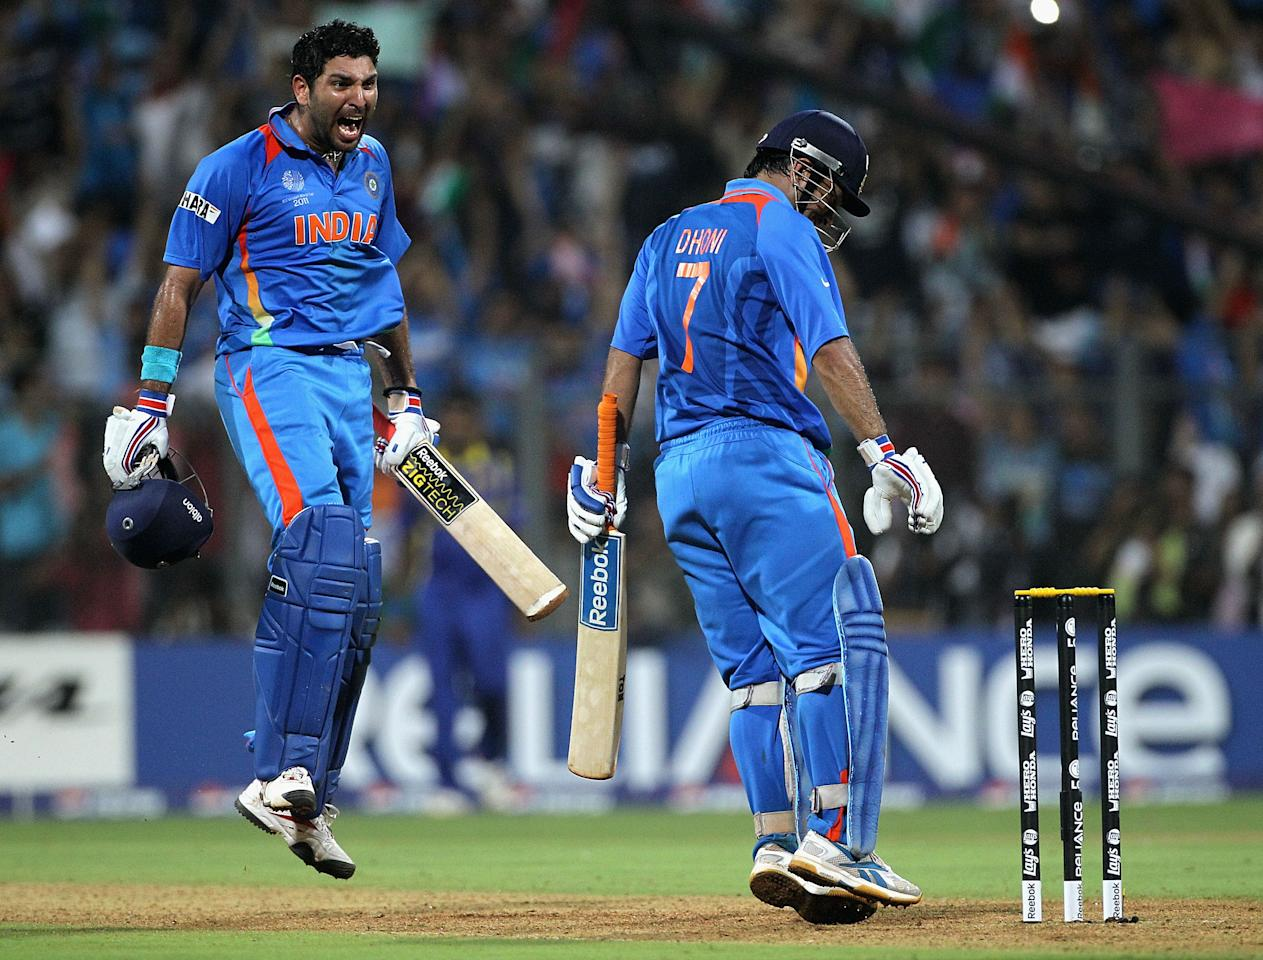 MUMBAI, INDIA - APRIL 02:  MS Dhoni and Yuvraj Singh of India celebrate after Dhoni hit a six to win the match during the 2011 ICC World Cup Final between India and Sri Lanka at Wankhede Stadium on April 2, 2011 in Mumbai, India.  (Photo by Hamish Blair/Getty Images)